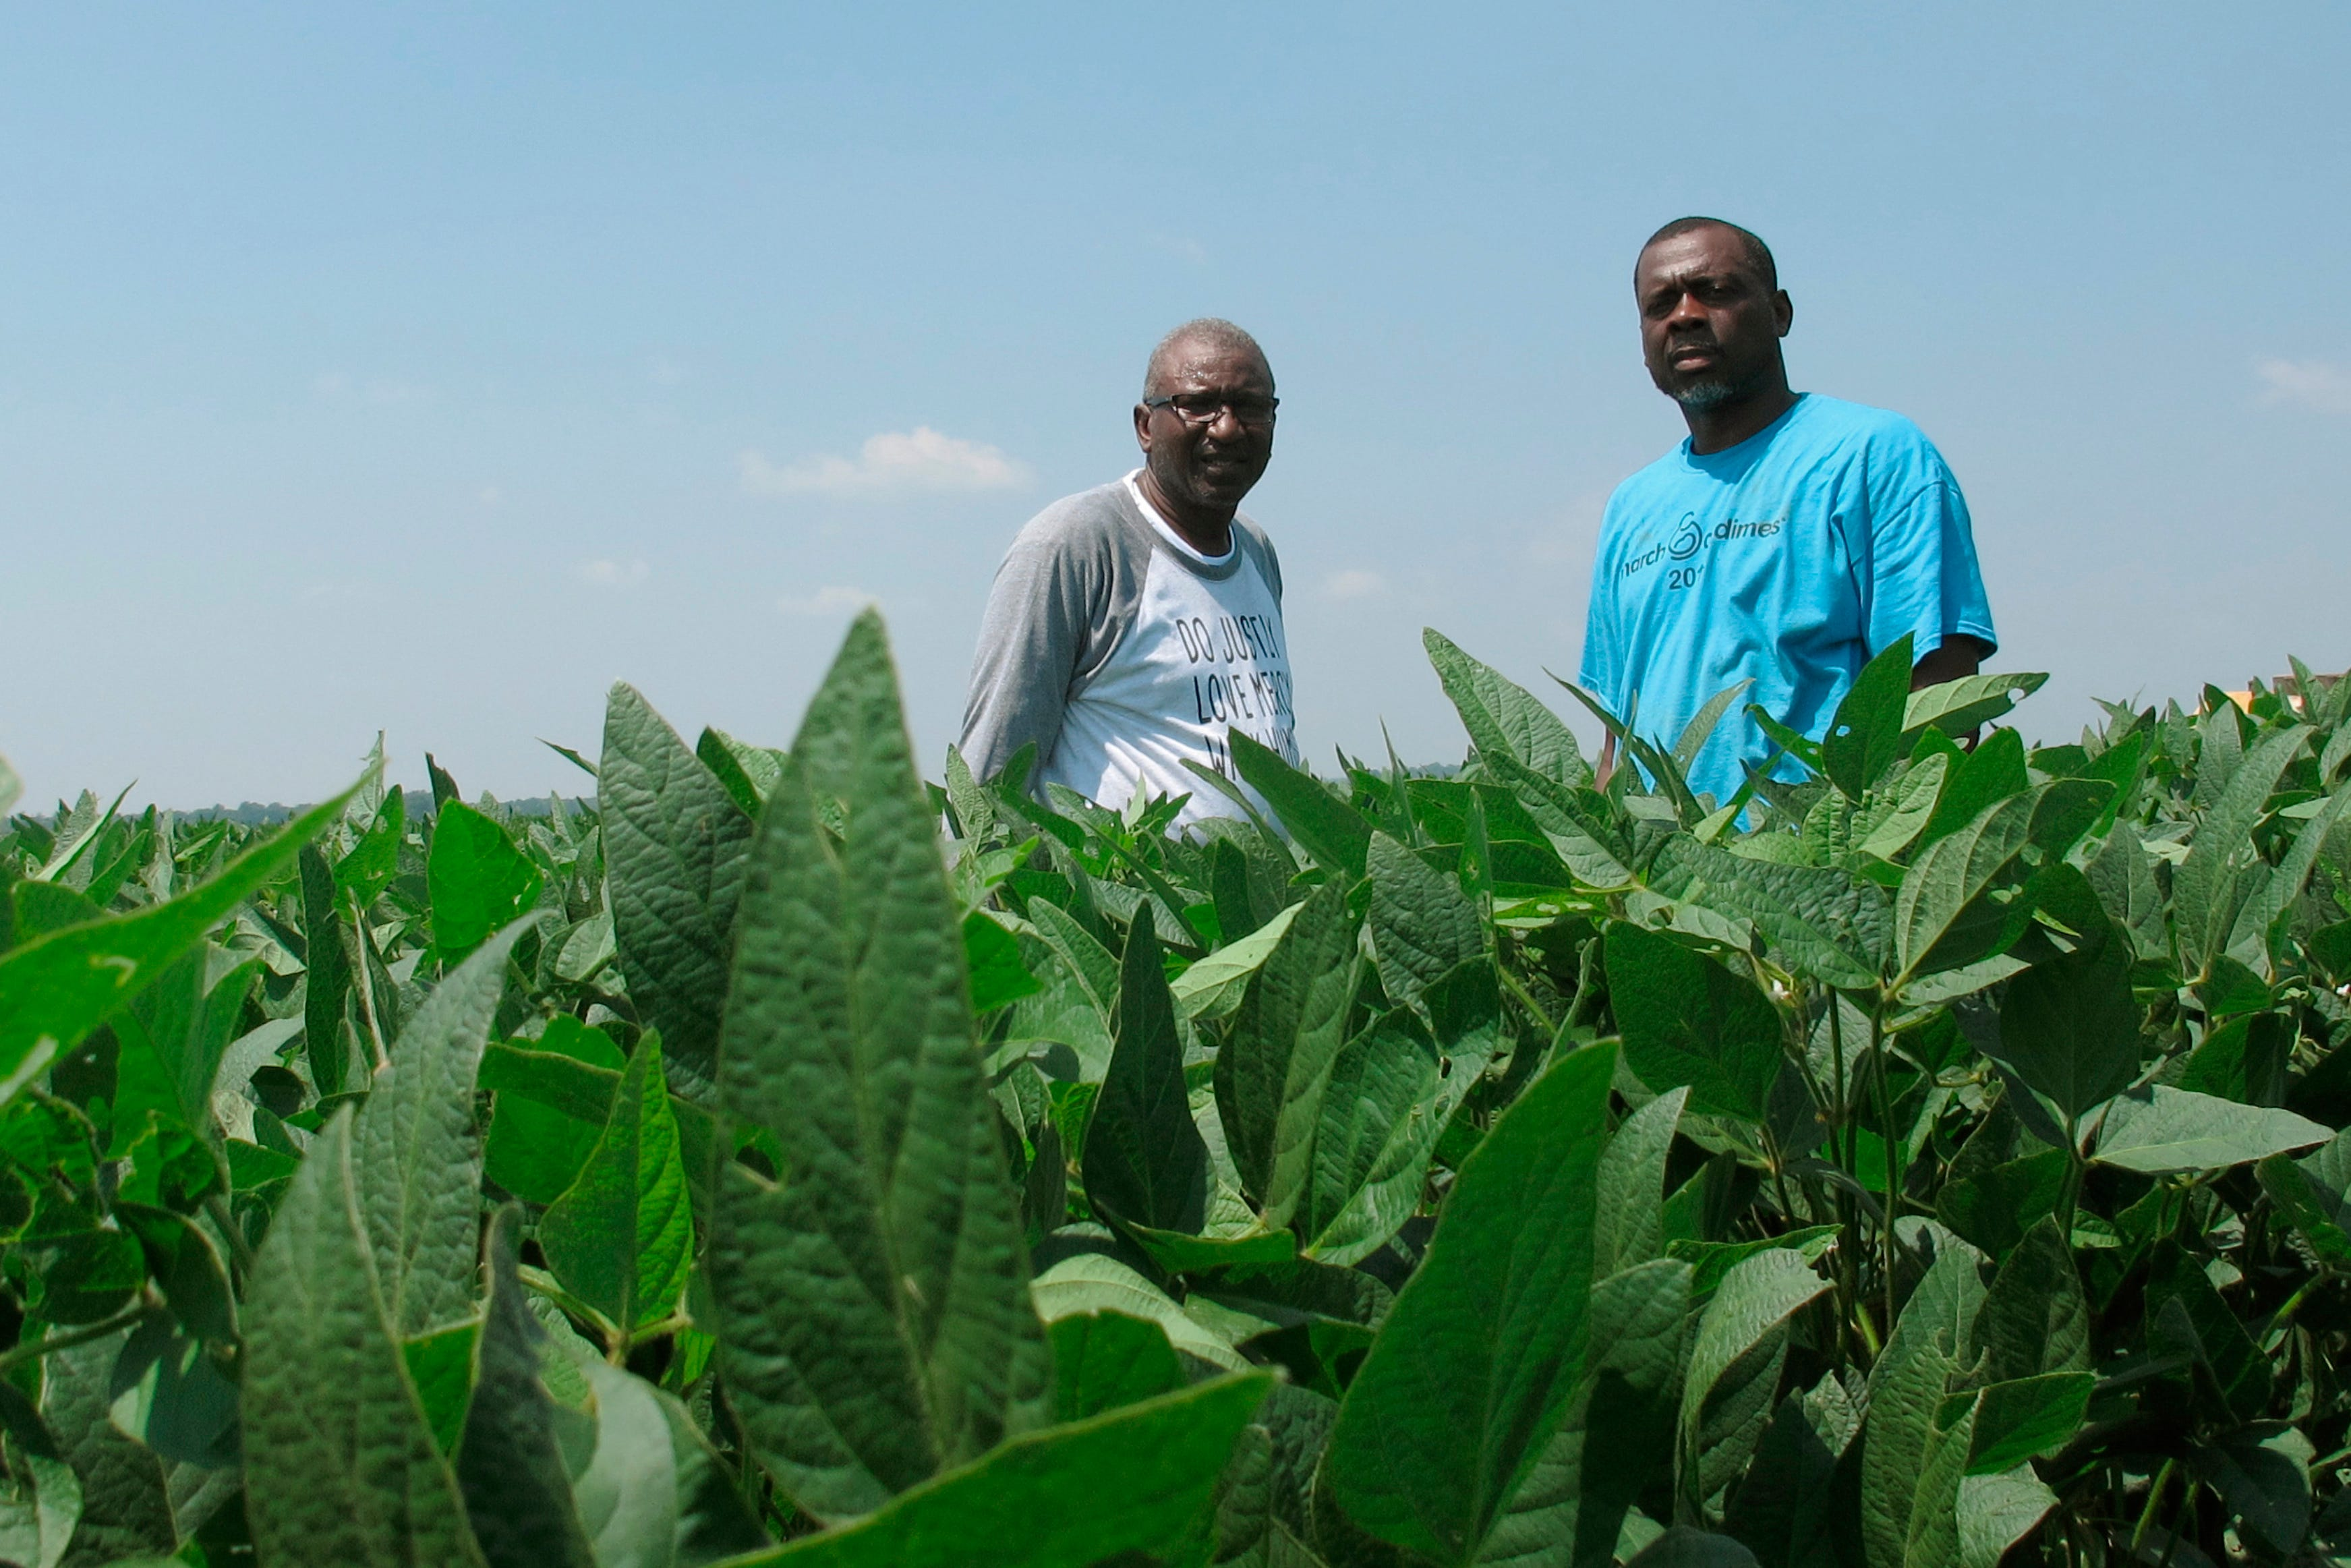 Black soybean farmers claim they were sold faulty seeds | Clarion Ledger